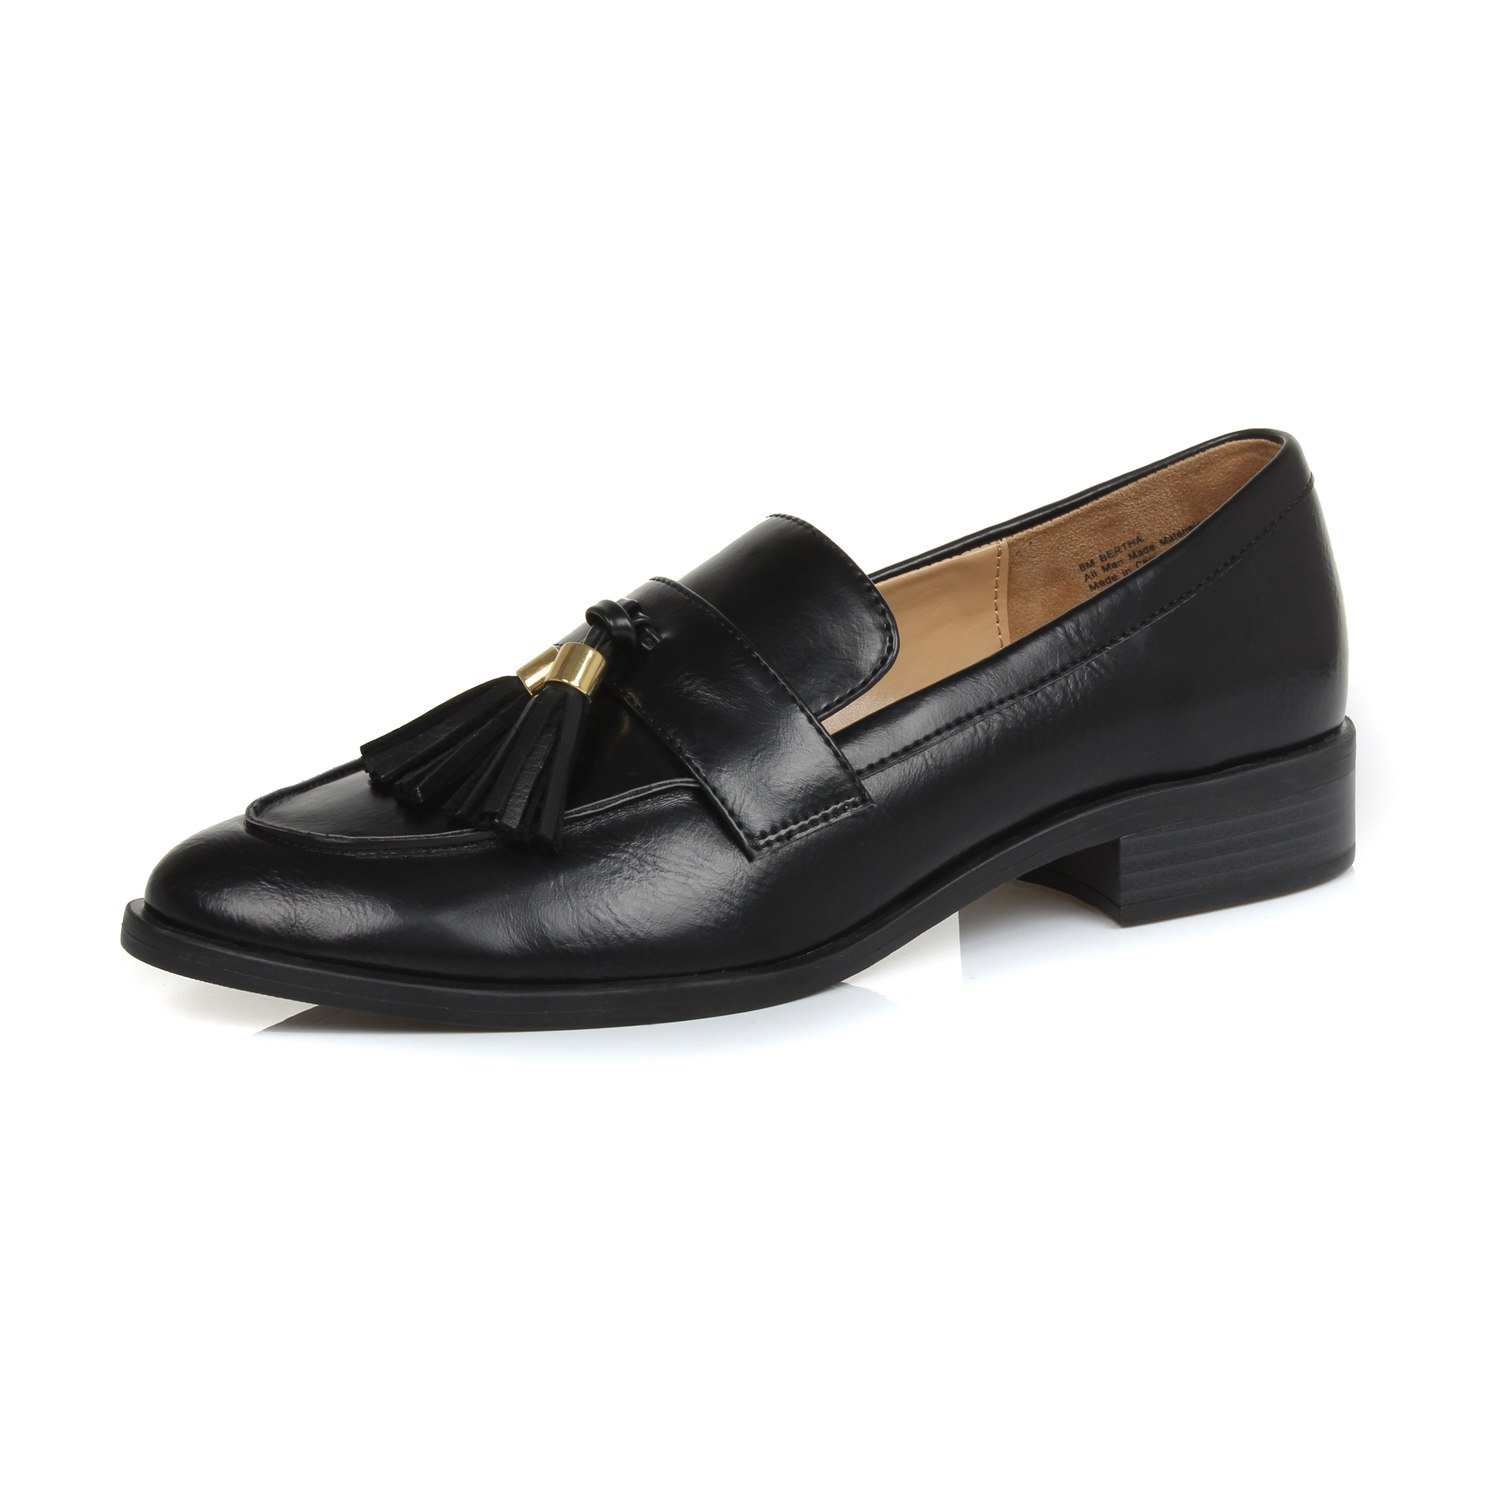 Bertha Black DUNION Women's Brandon Chain Decorated Penny Loafers Low Heels Almond Toe Casual Daily shoes